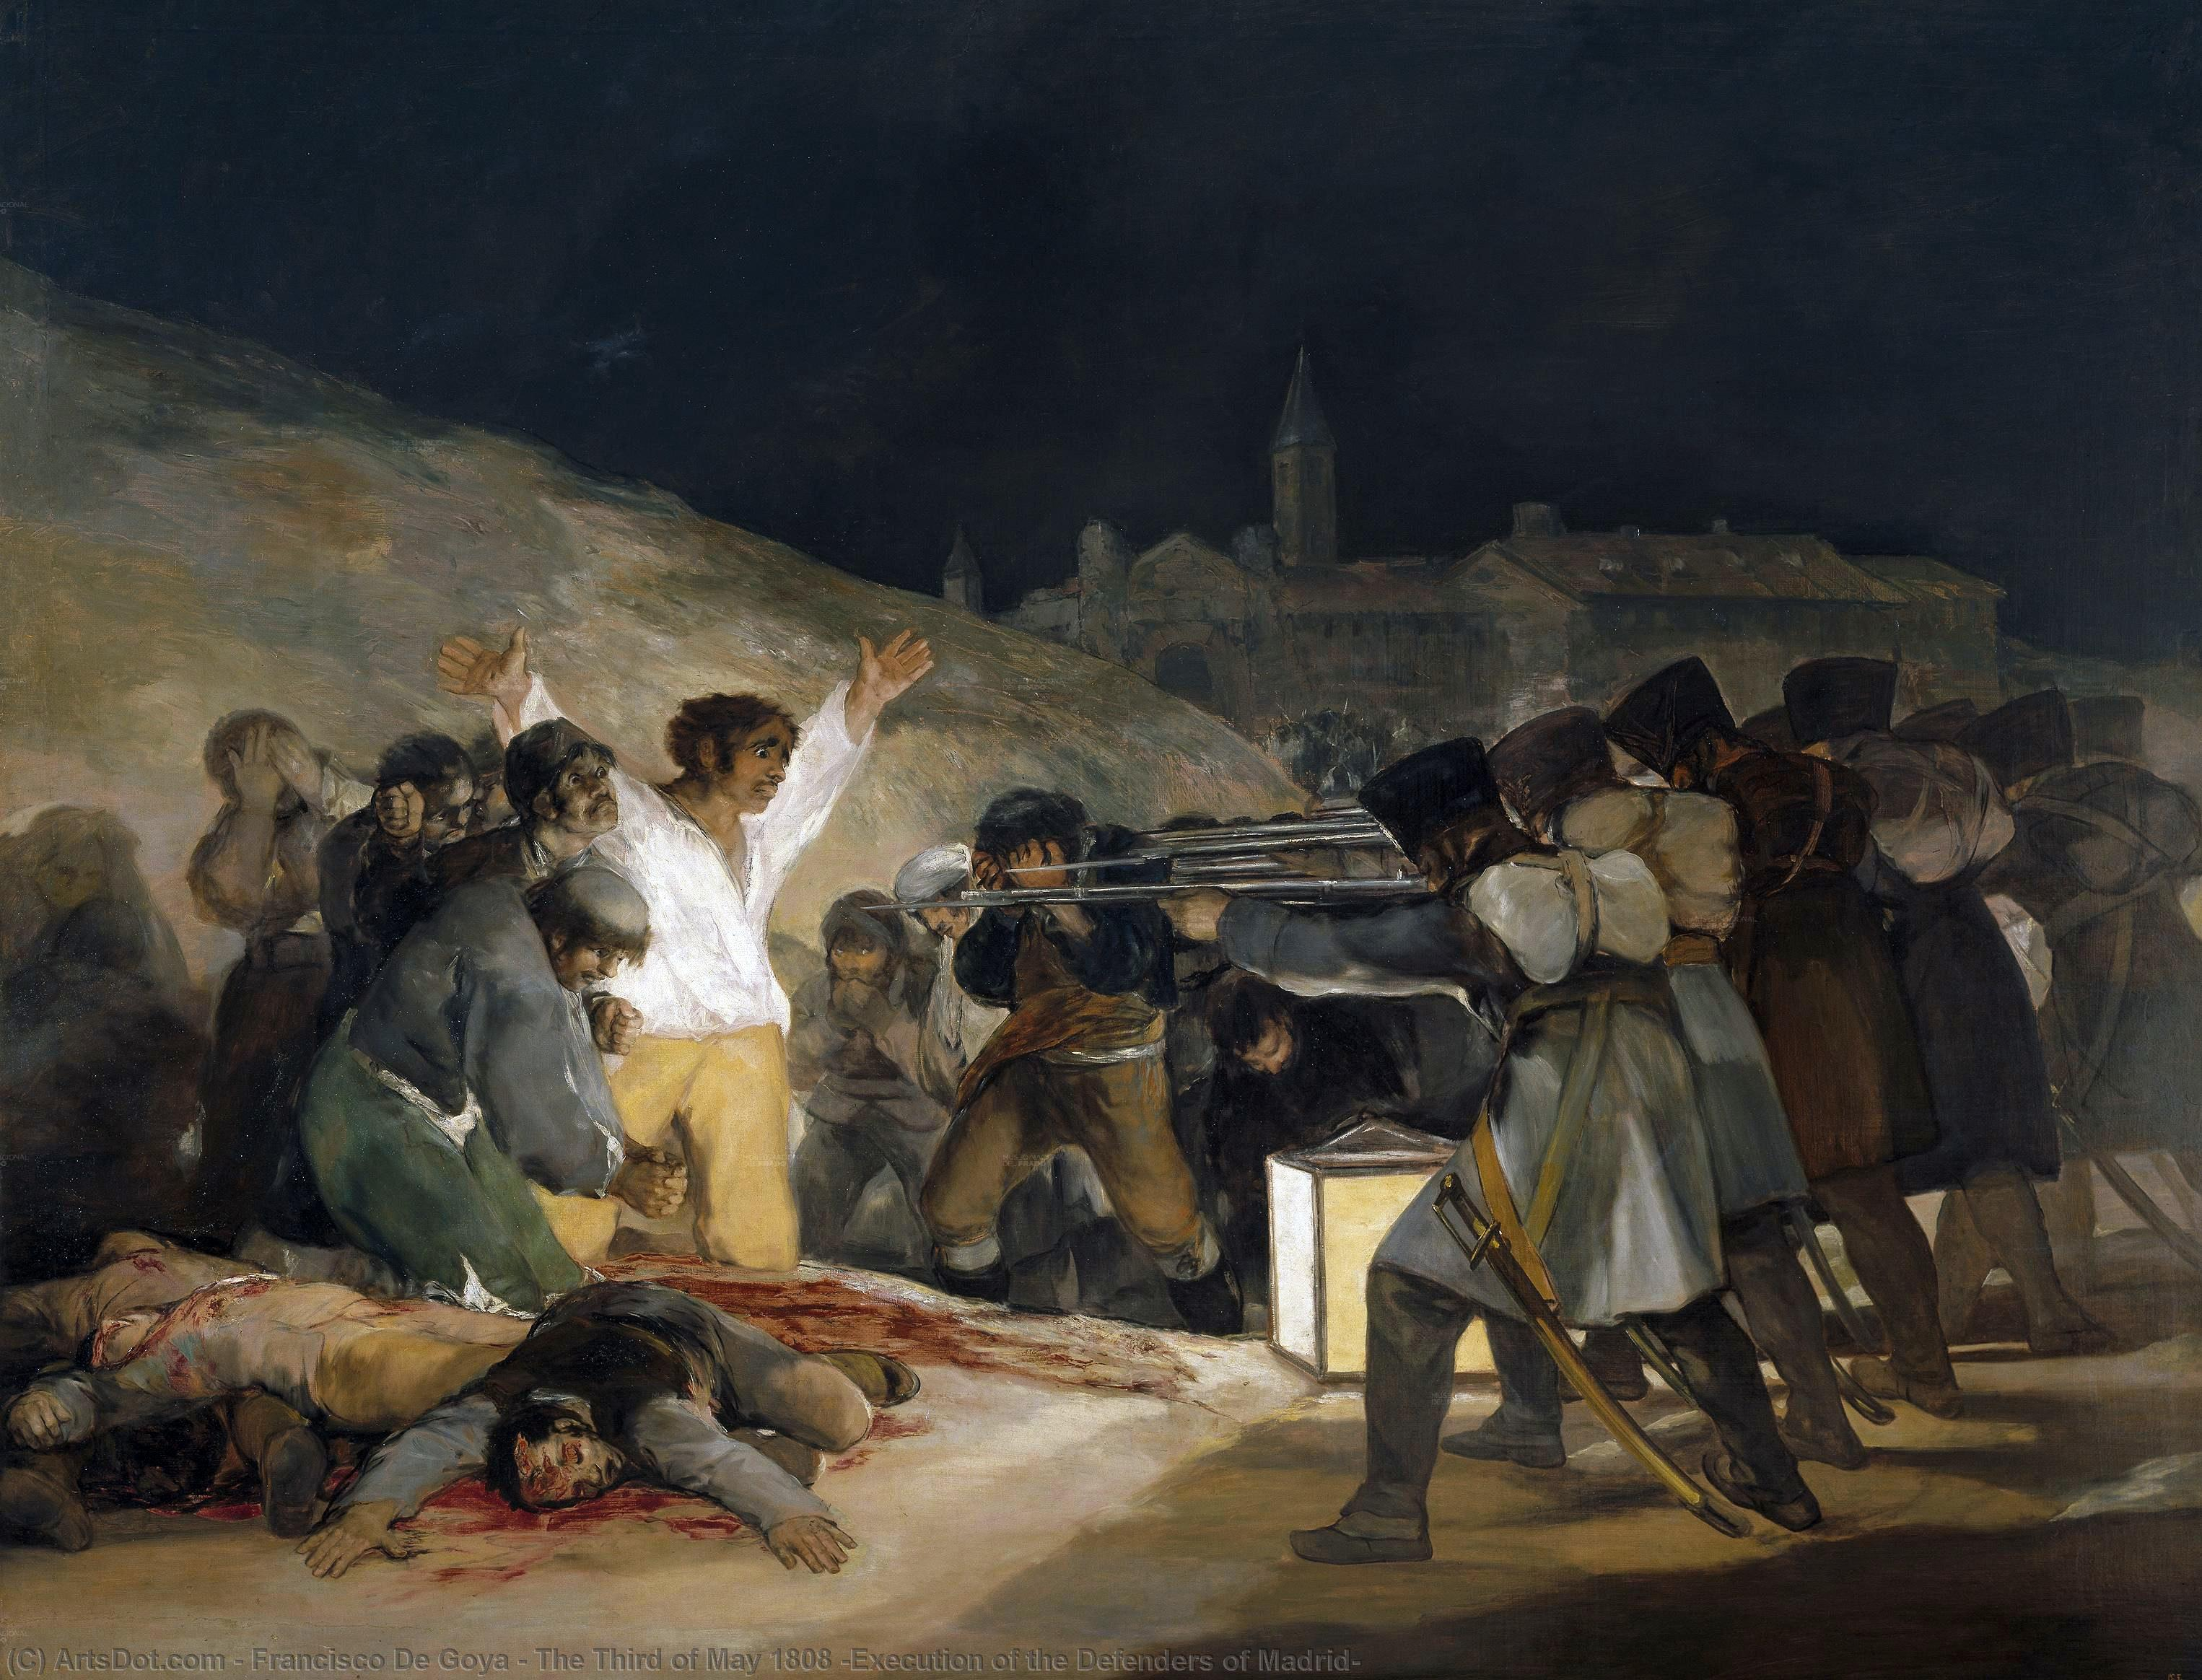 The Third of May 1808 (Execution of the Defenders of Madrid) - Francisco De Goya